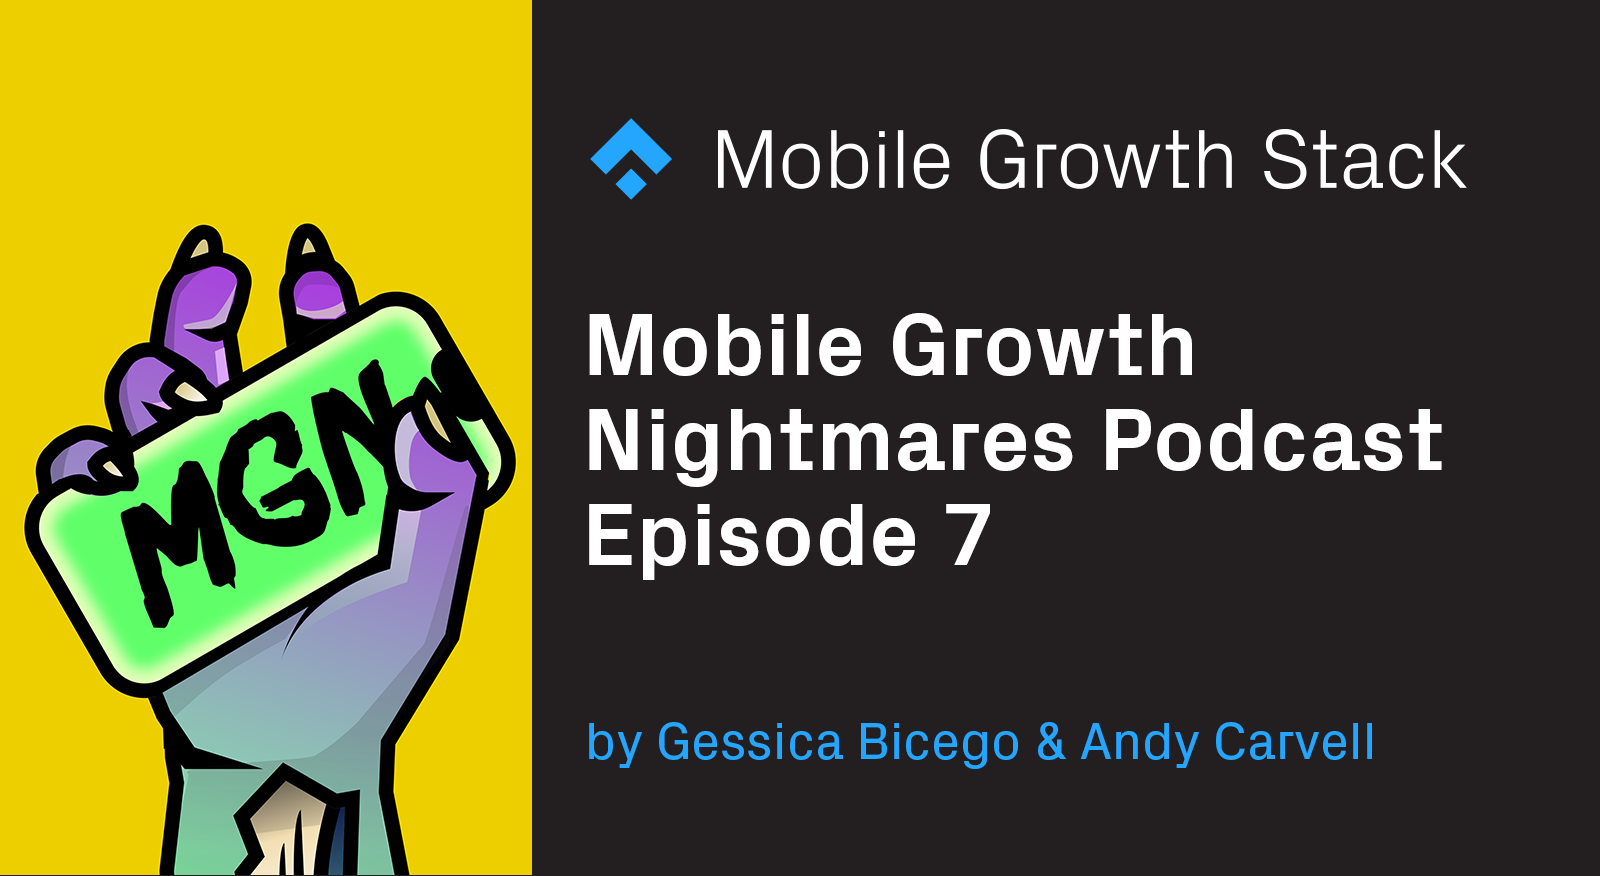 Mobile Growth Nightmares Podcast Episode 7